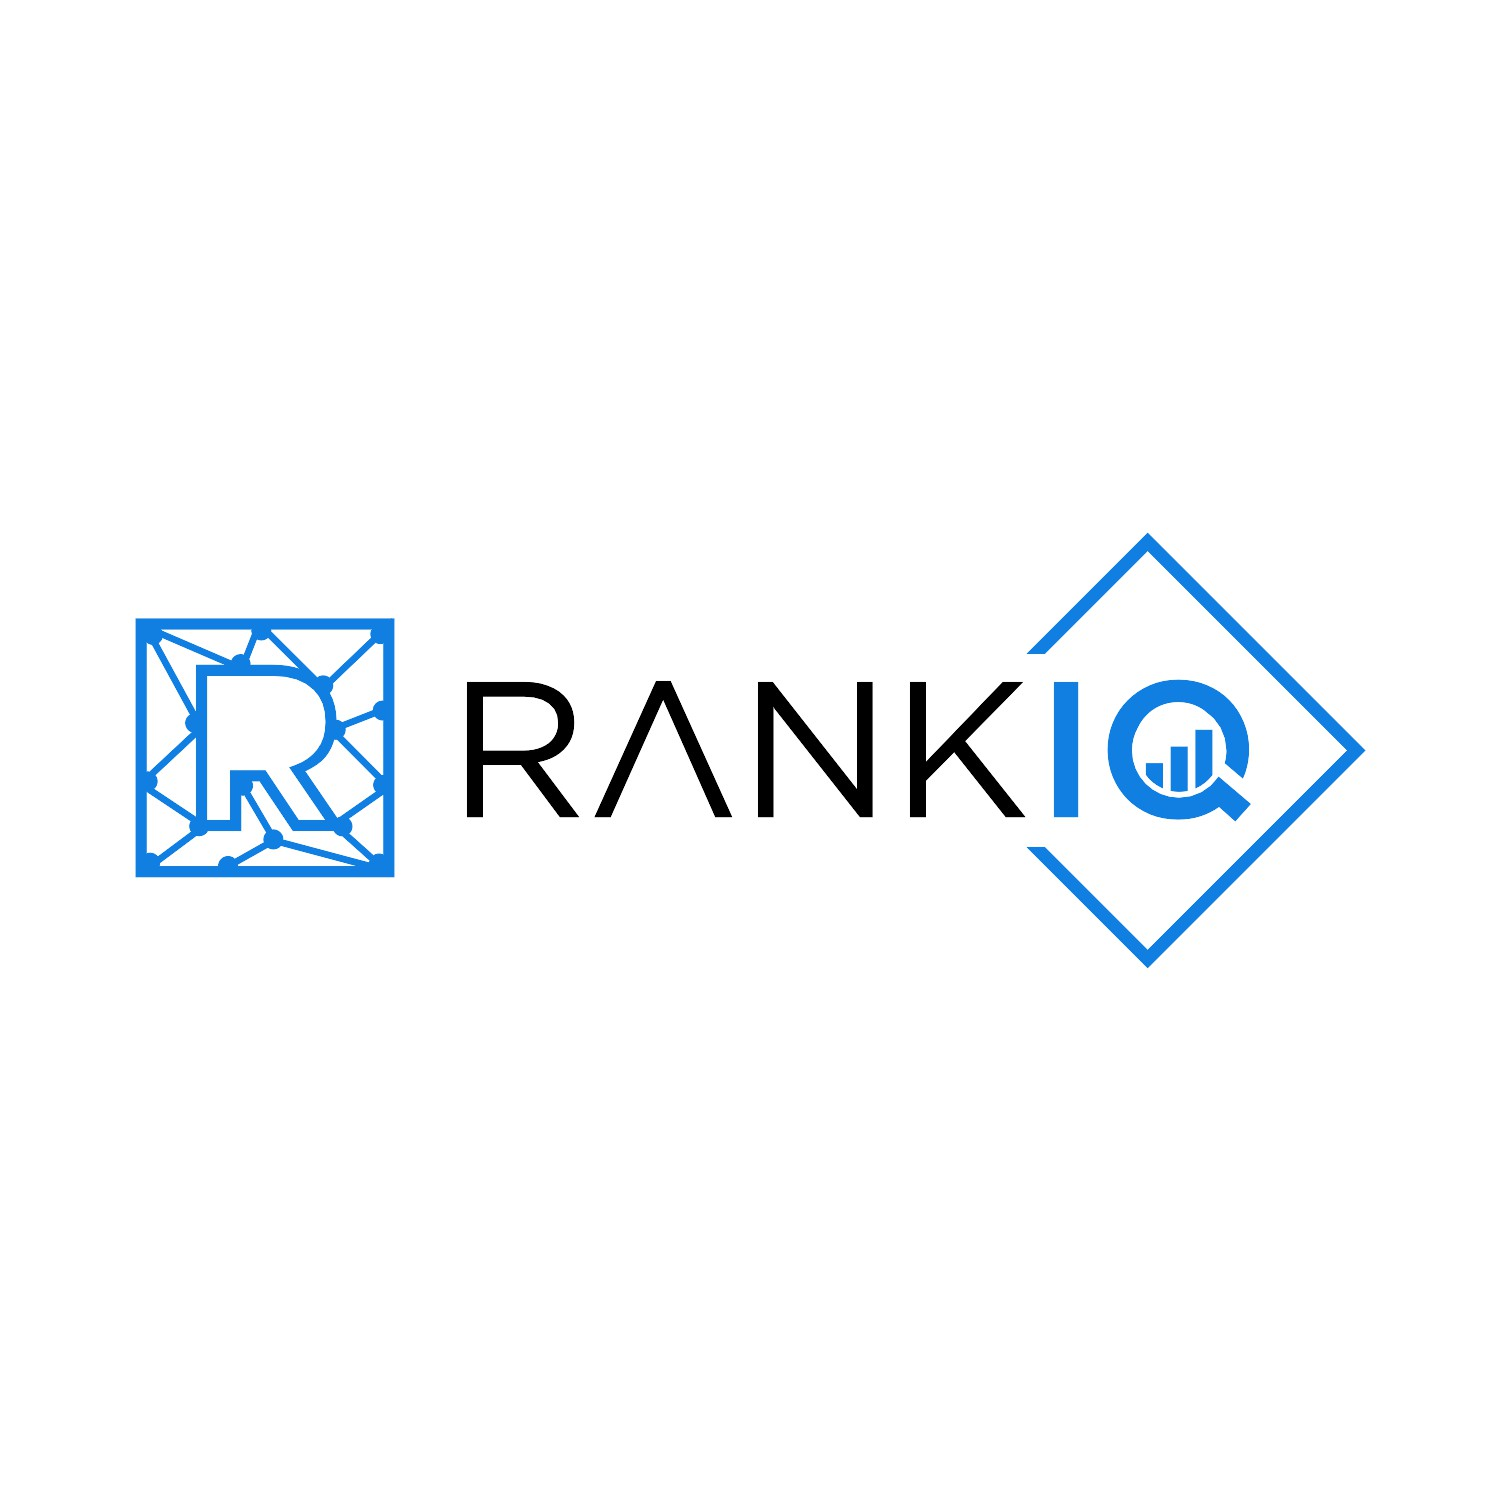 Logo Contest for SEO tool, that uses AI to optimize content to show up on the first page of Google.